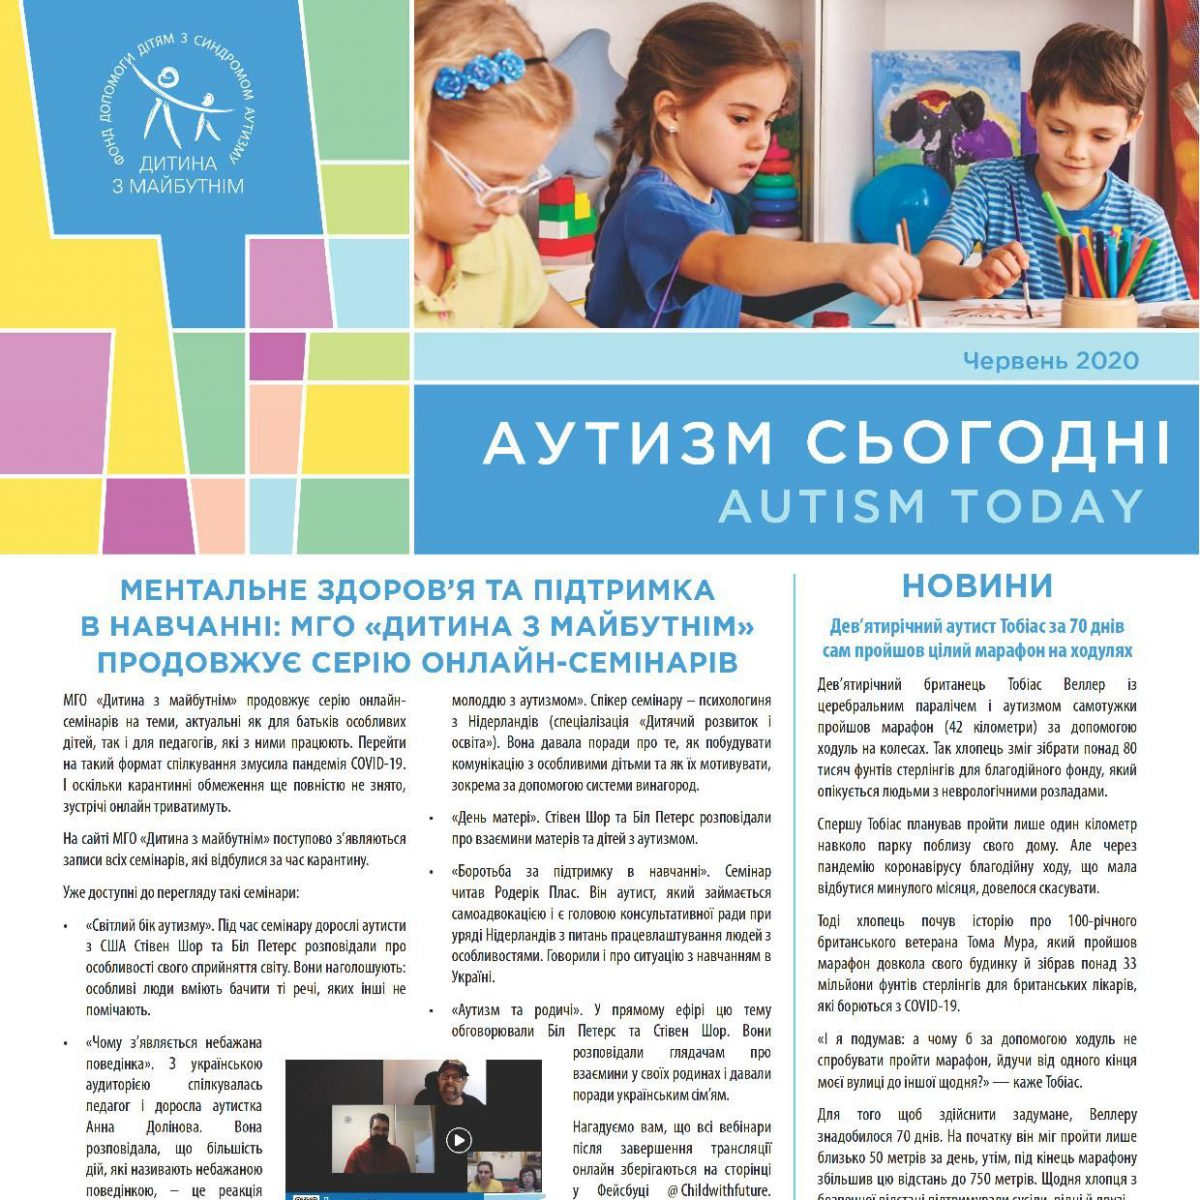 Interview with Ekaterina Ostrovskaya about the history of therapy centers and their creation in the new issue of 'Autism Today'